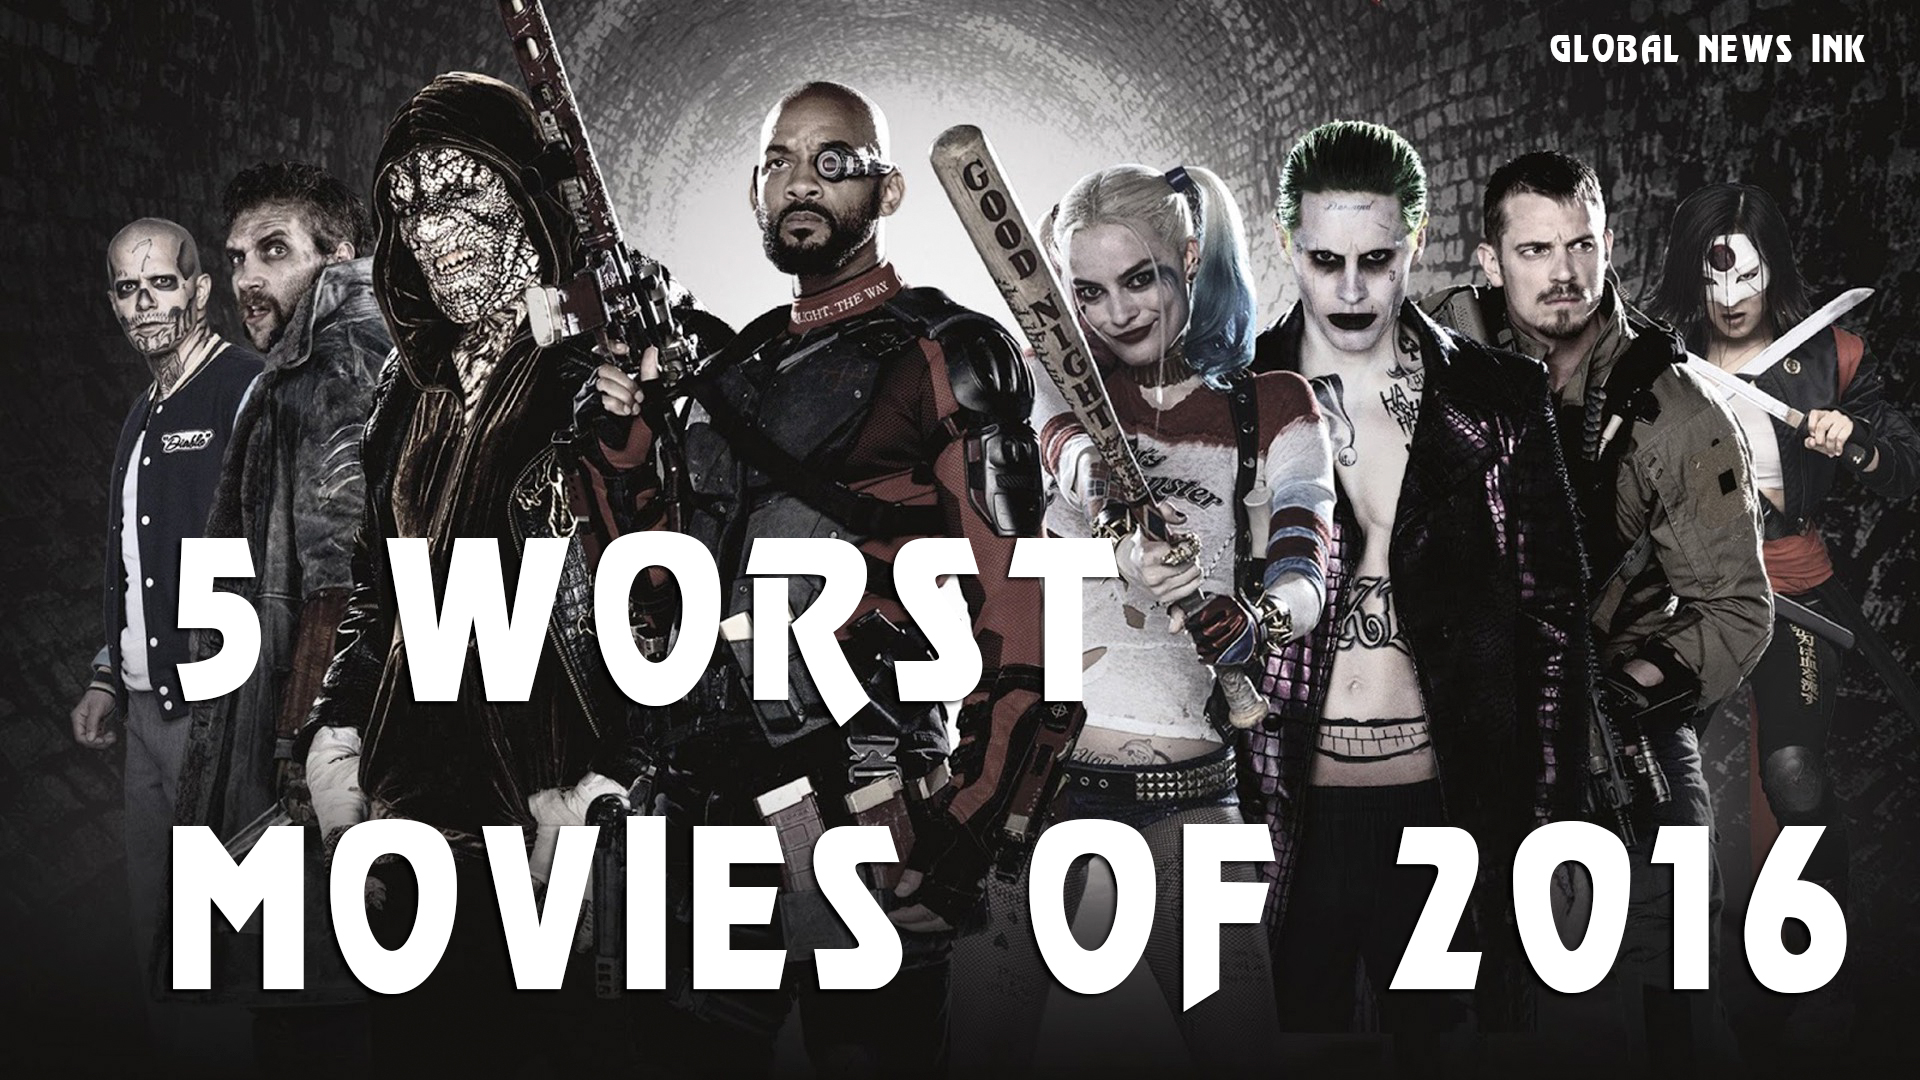 Suicide Squad makes Global News Ink 5 worst movies of 2016 list